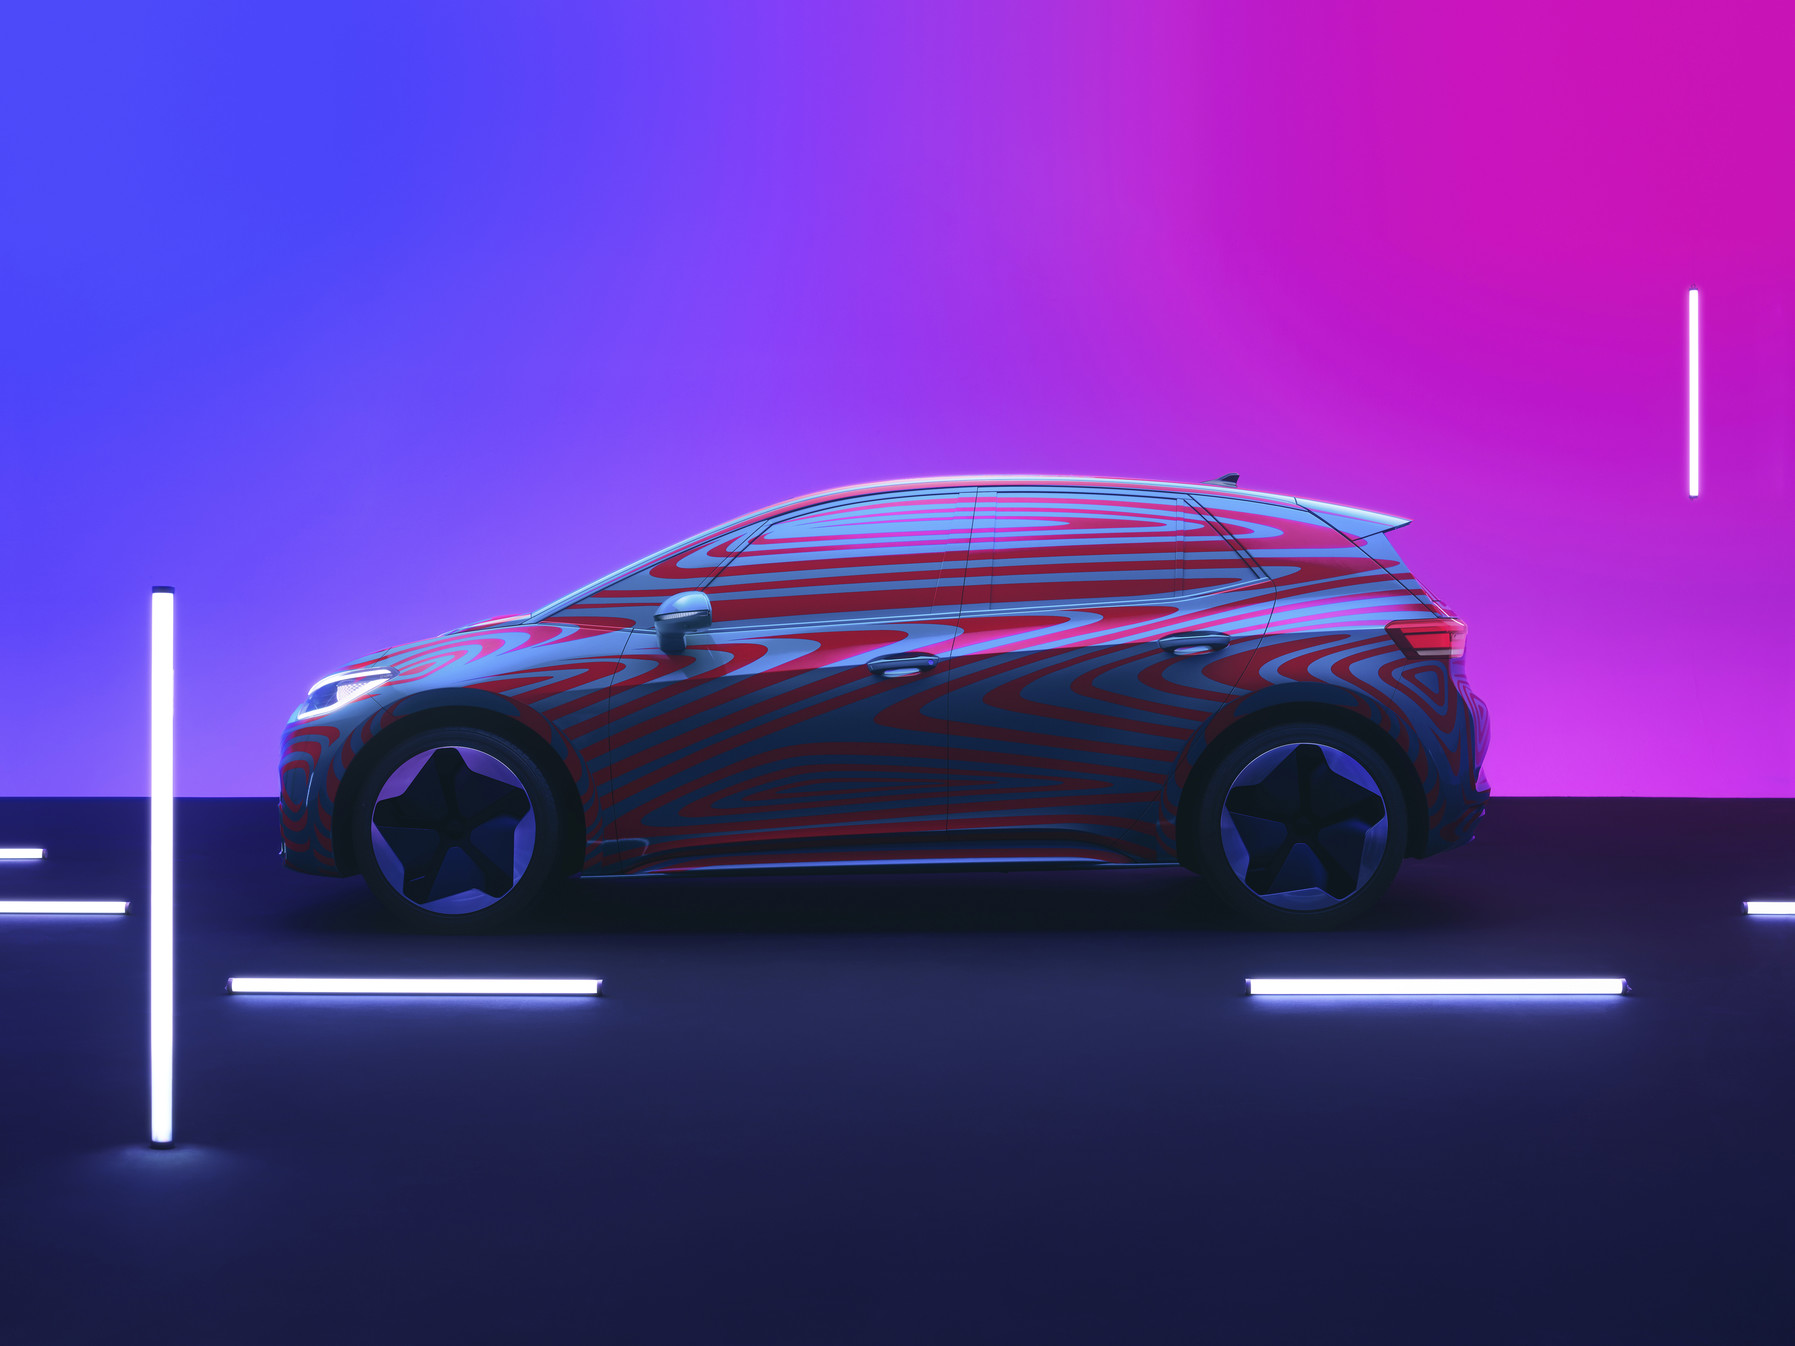 VW's new electric hatchback receives 10,000 pre-orders in first 24 hours